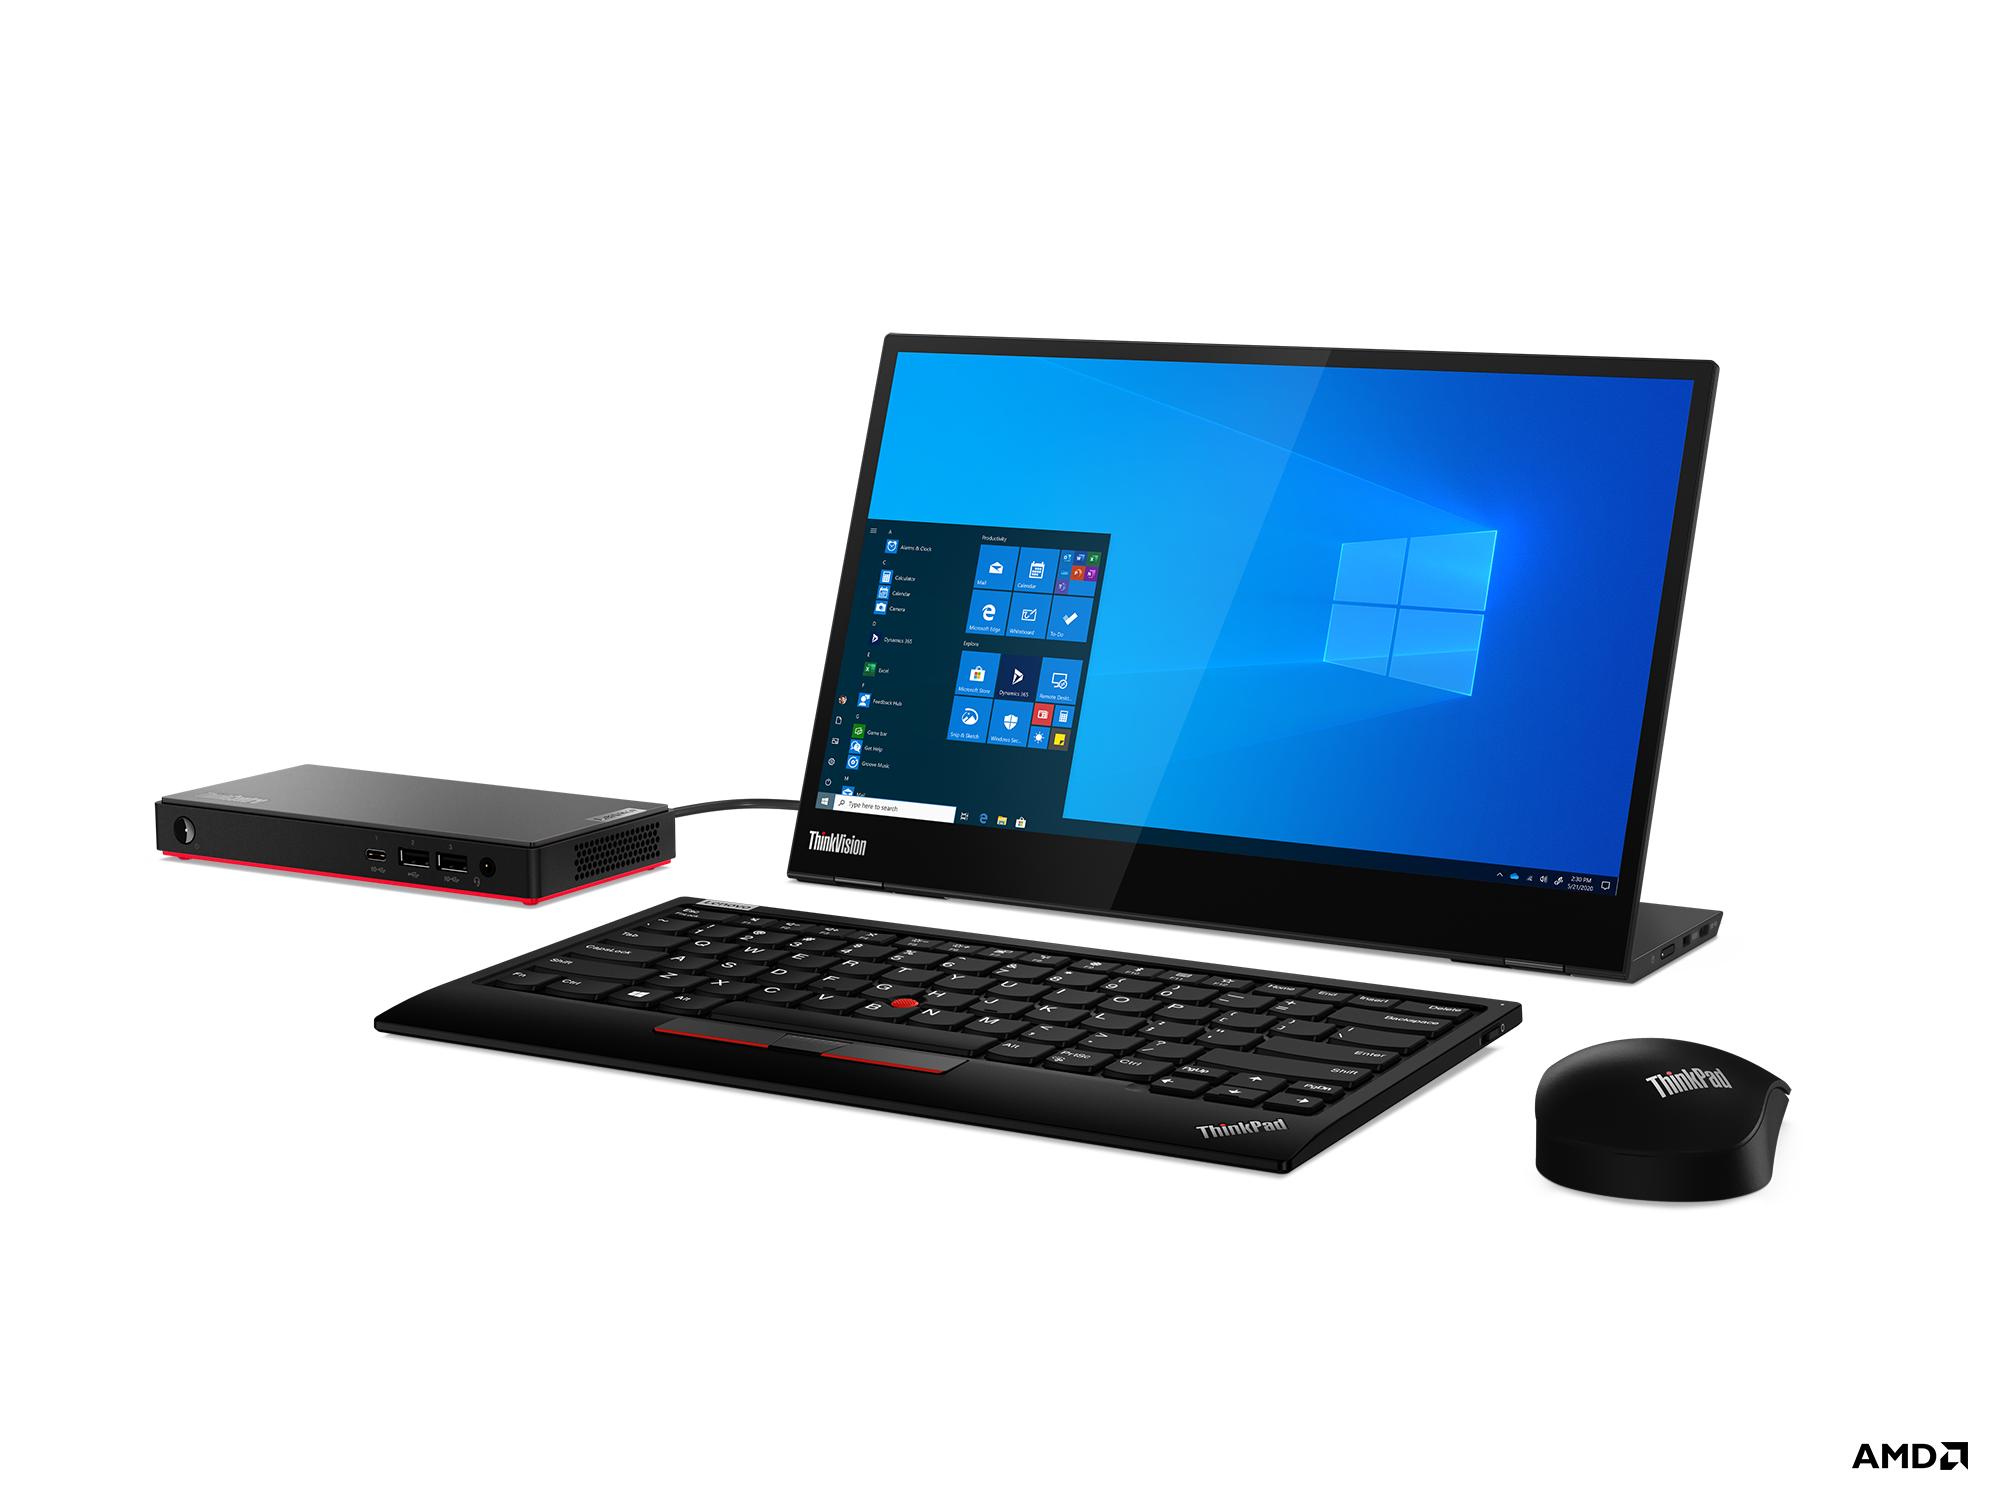 Lenovo ThinkCentre M75n